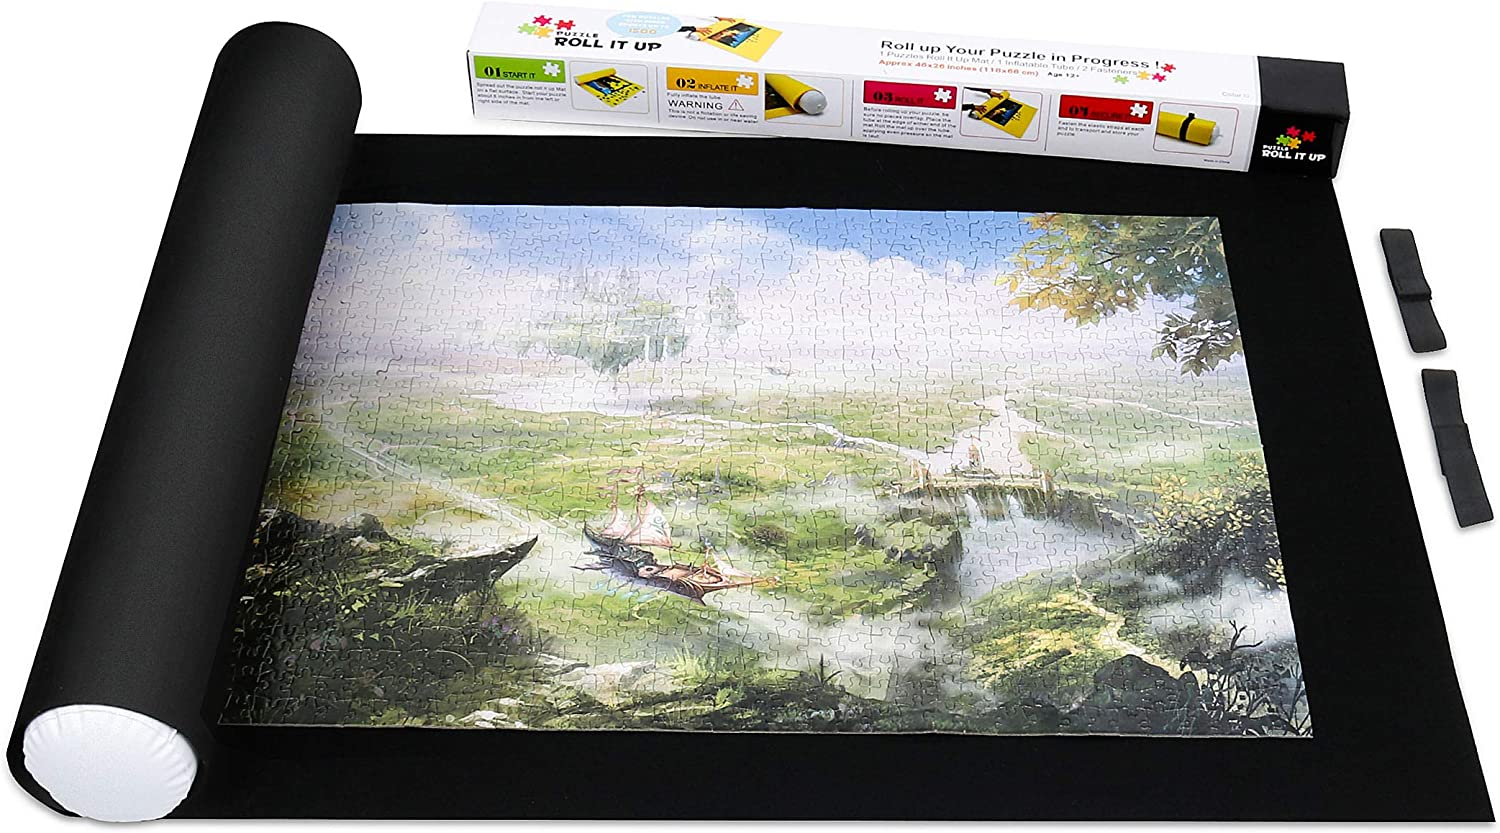 Black NorthKe Jigsaw Puzzle Roll Mat Black Gray Felt Mat Saver Up to 1,500 pcs for All Puzzle Storage Puzzle with Size Mark